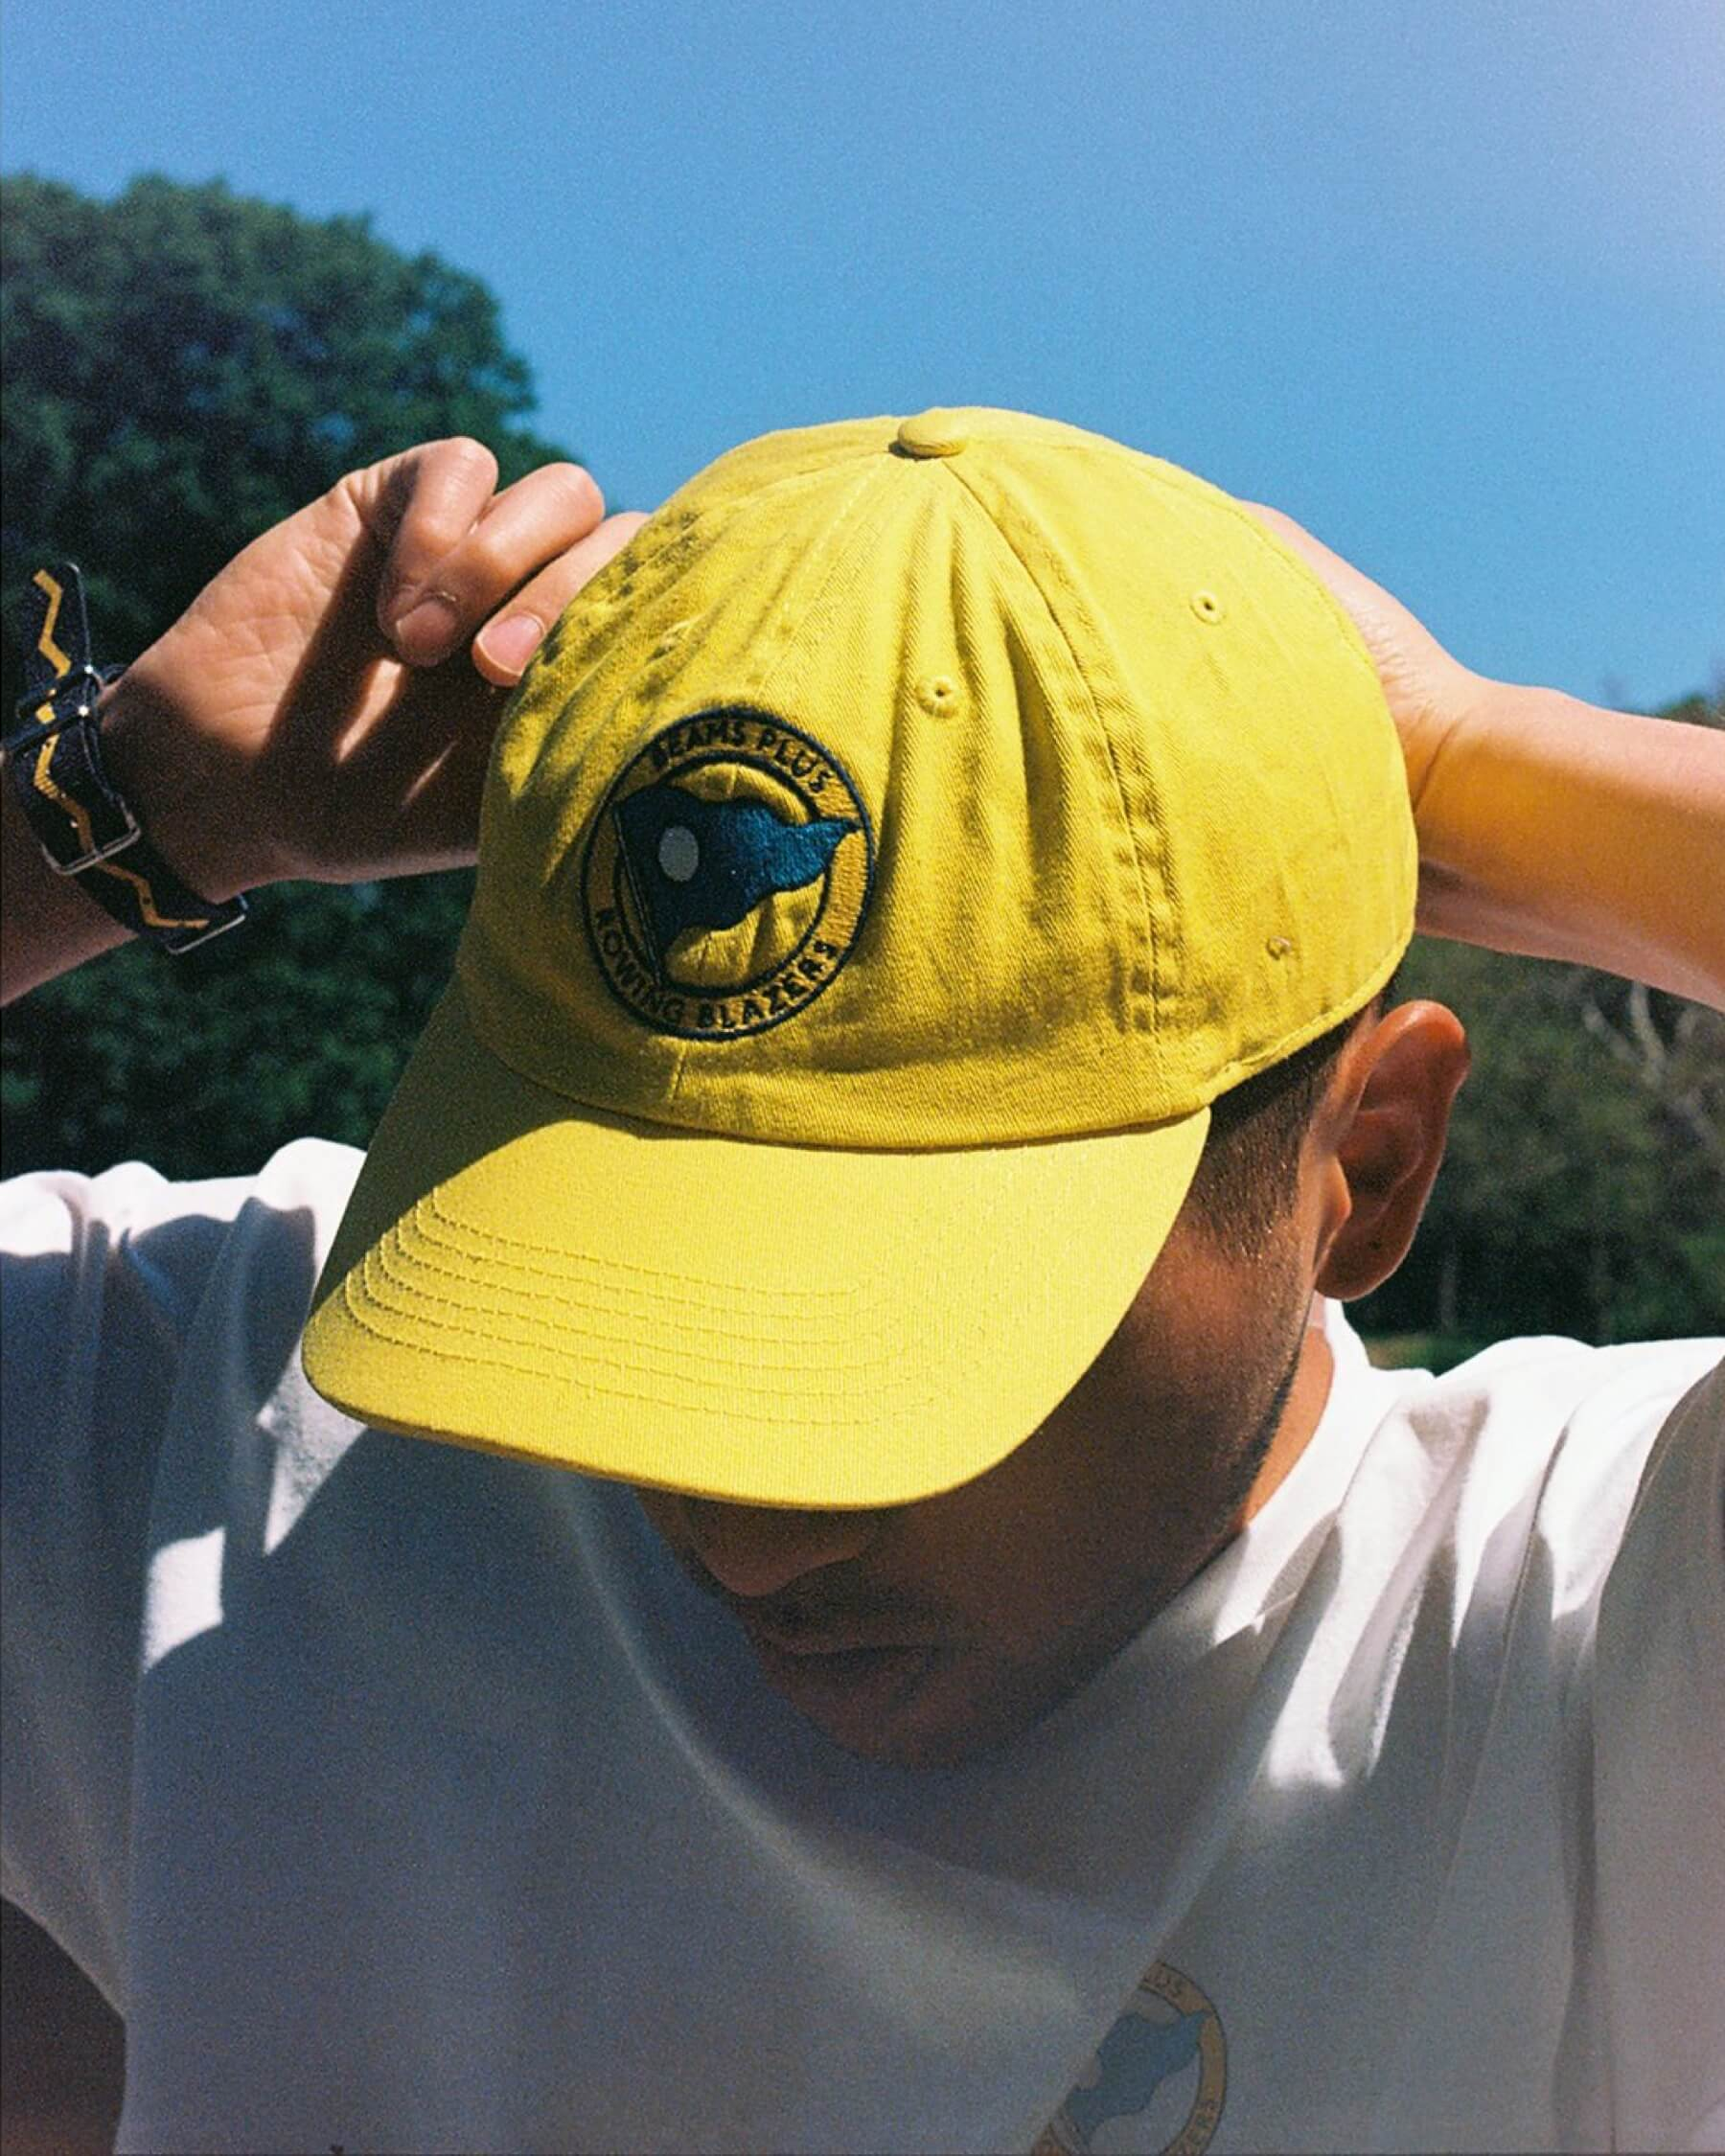 Rowing Blazers dad cap is one of the best men's summer hats and caps 2019